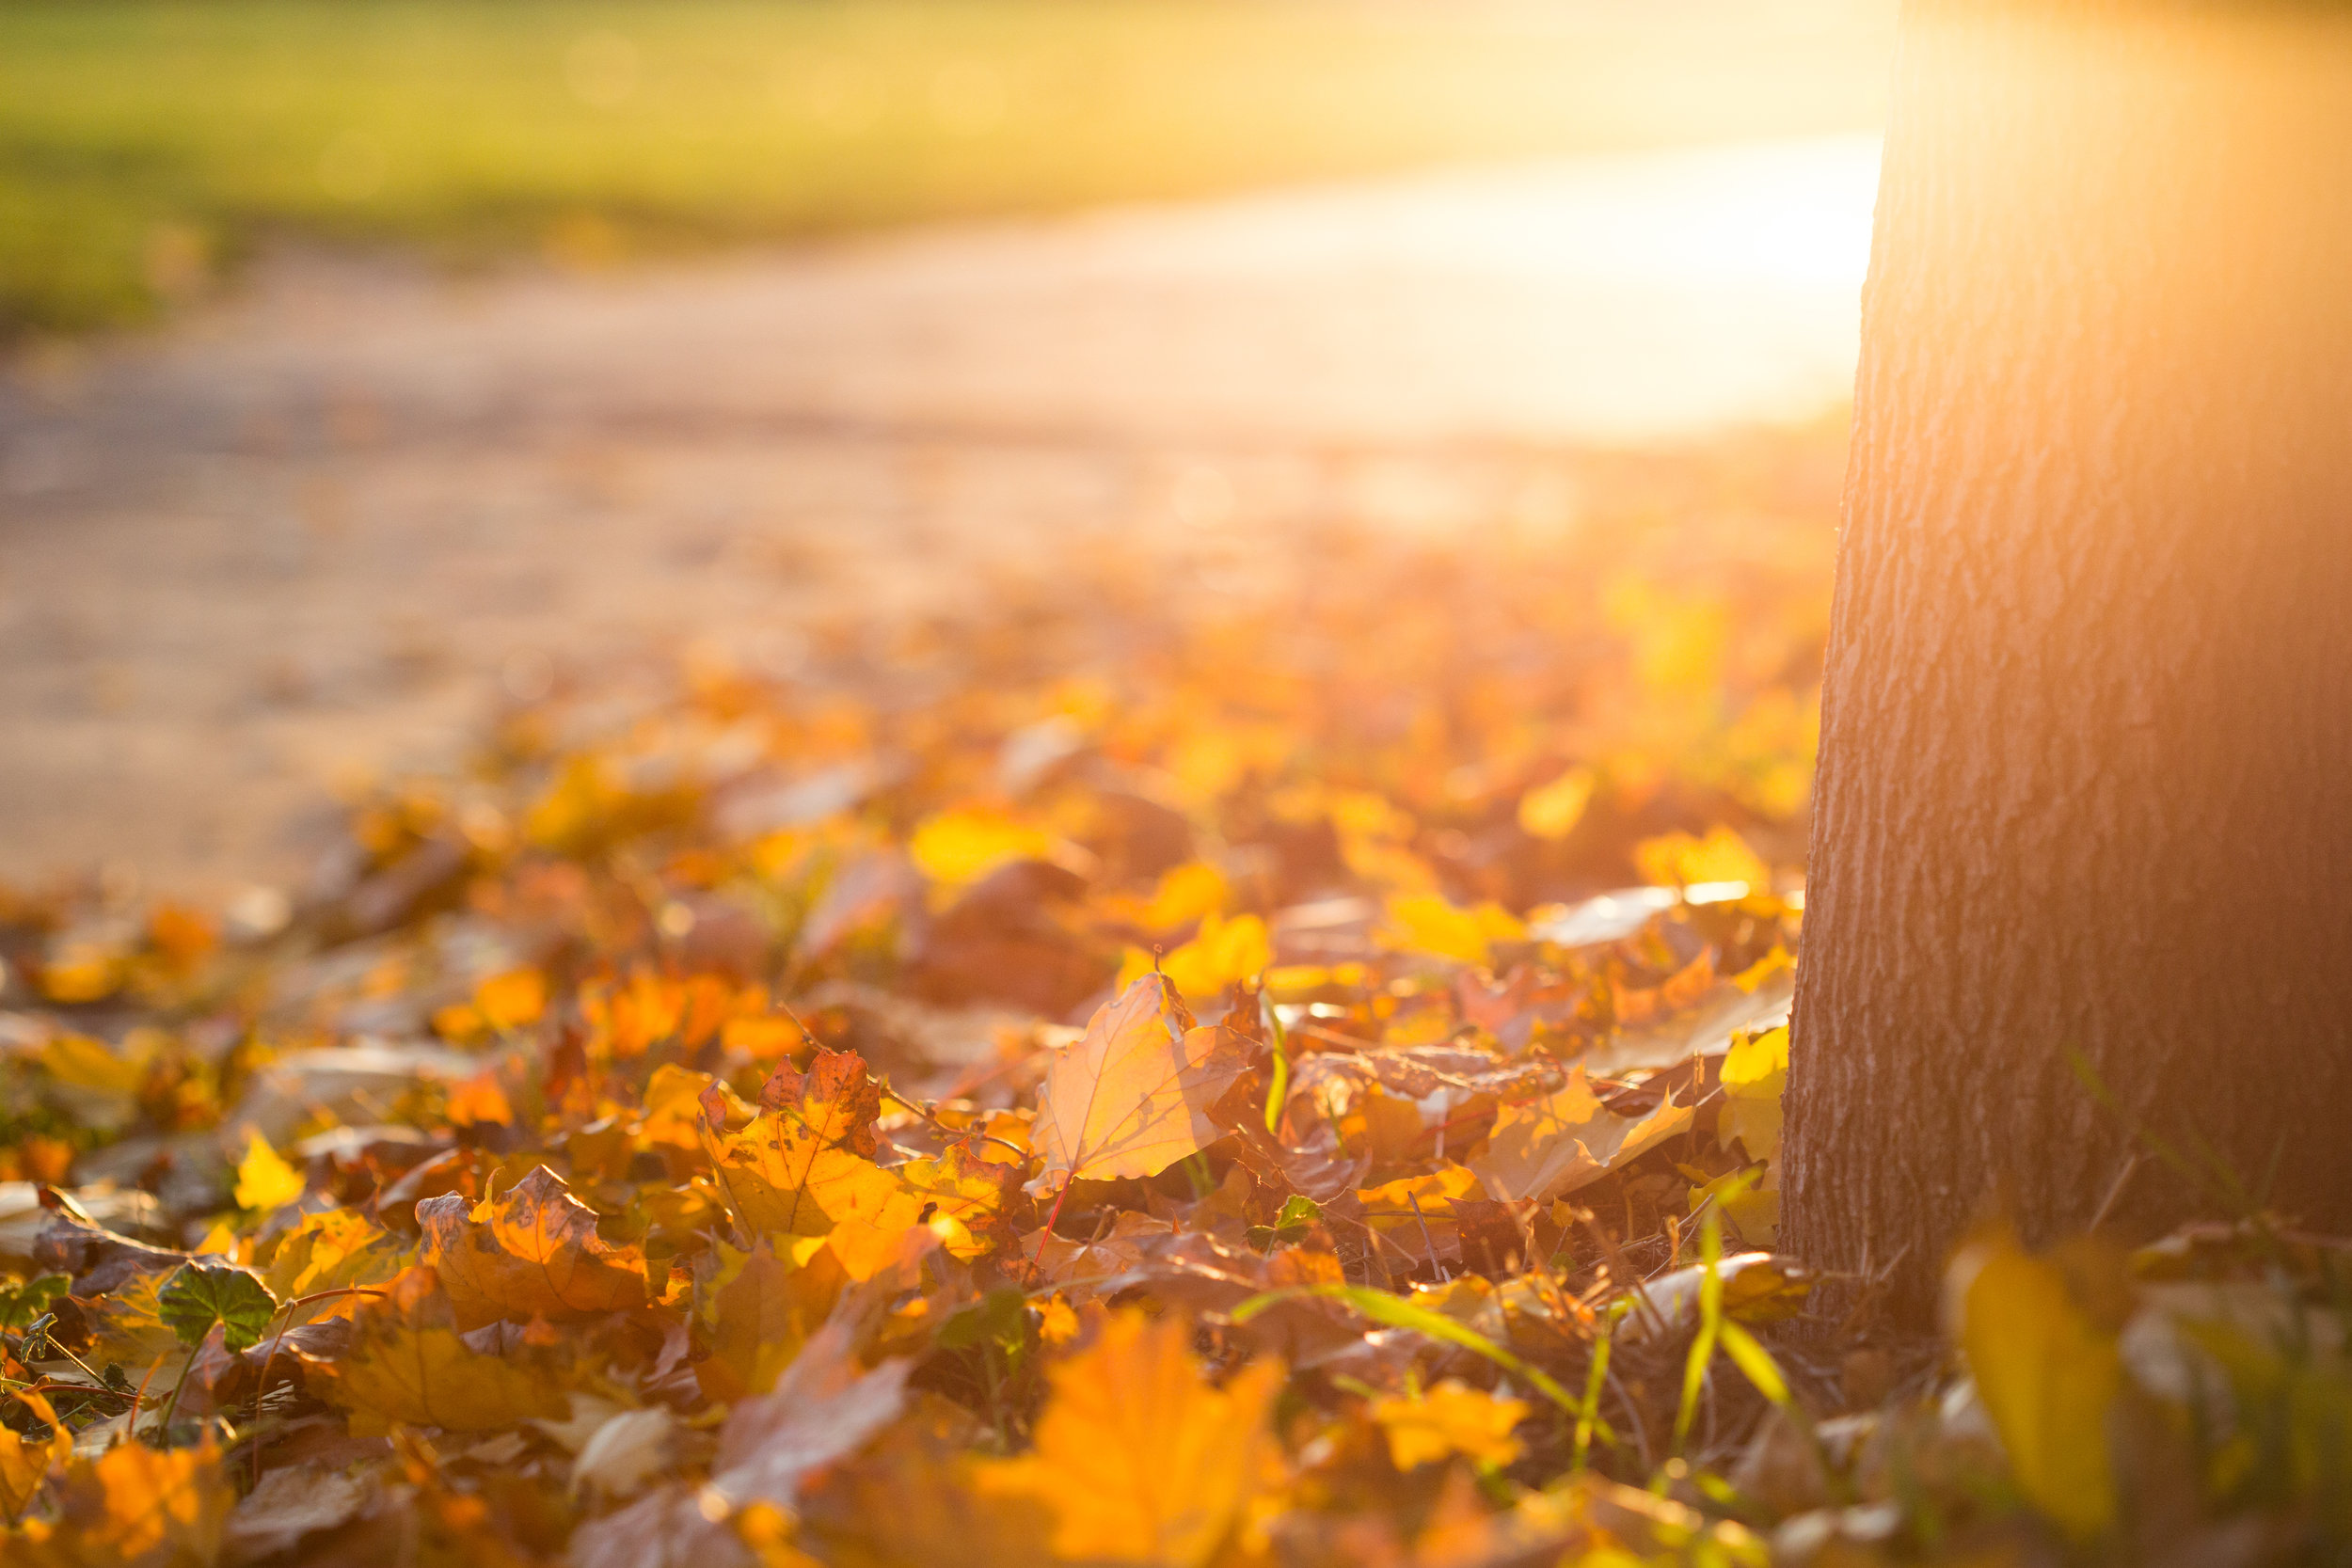 fall-autumn-leaves-on-the-ground-picjumbo-com.jpg